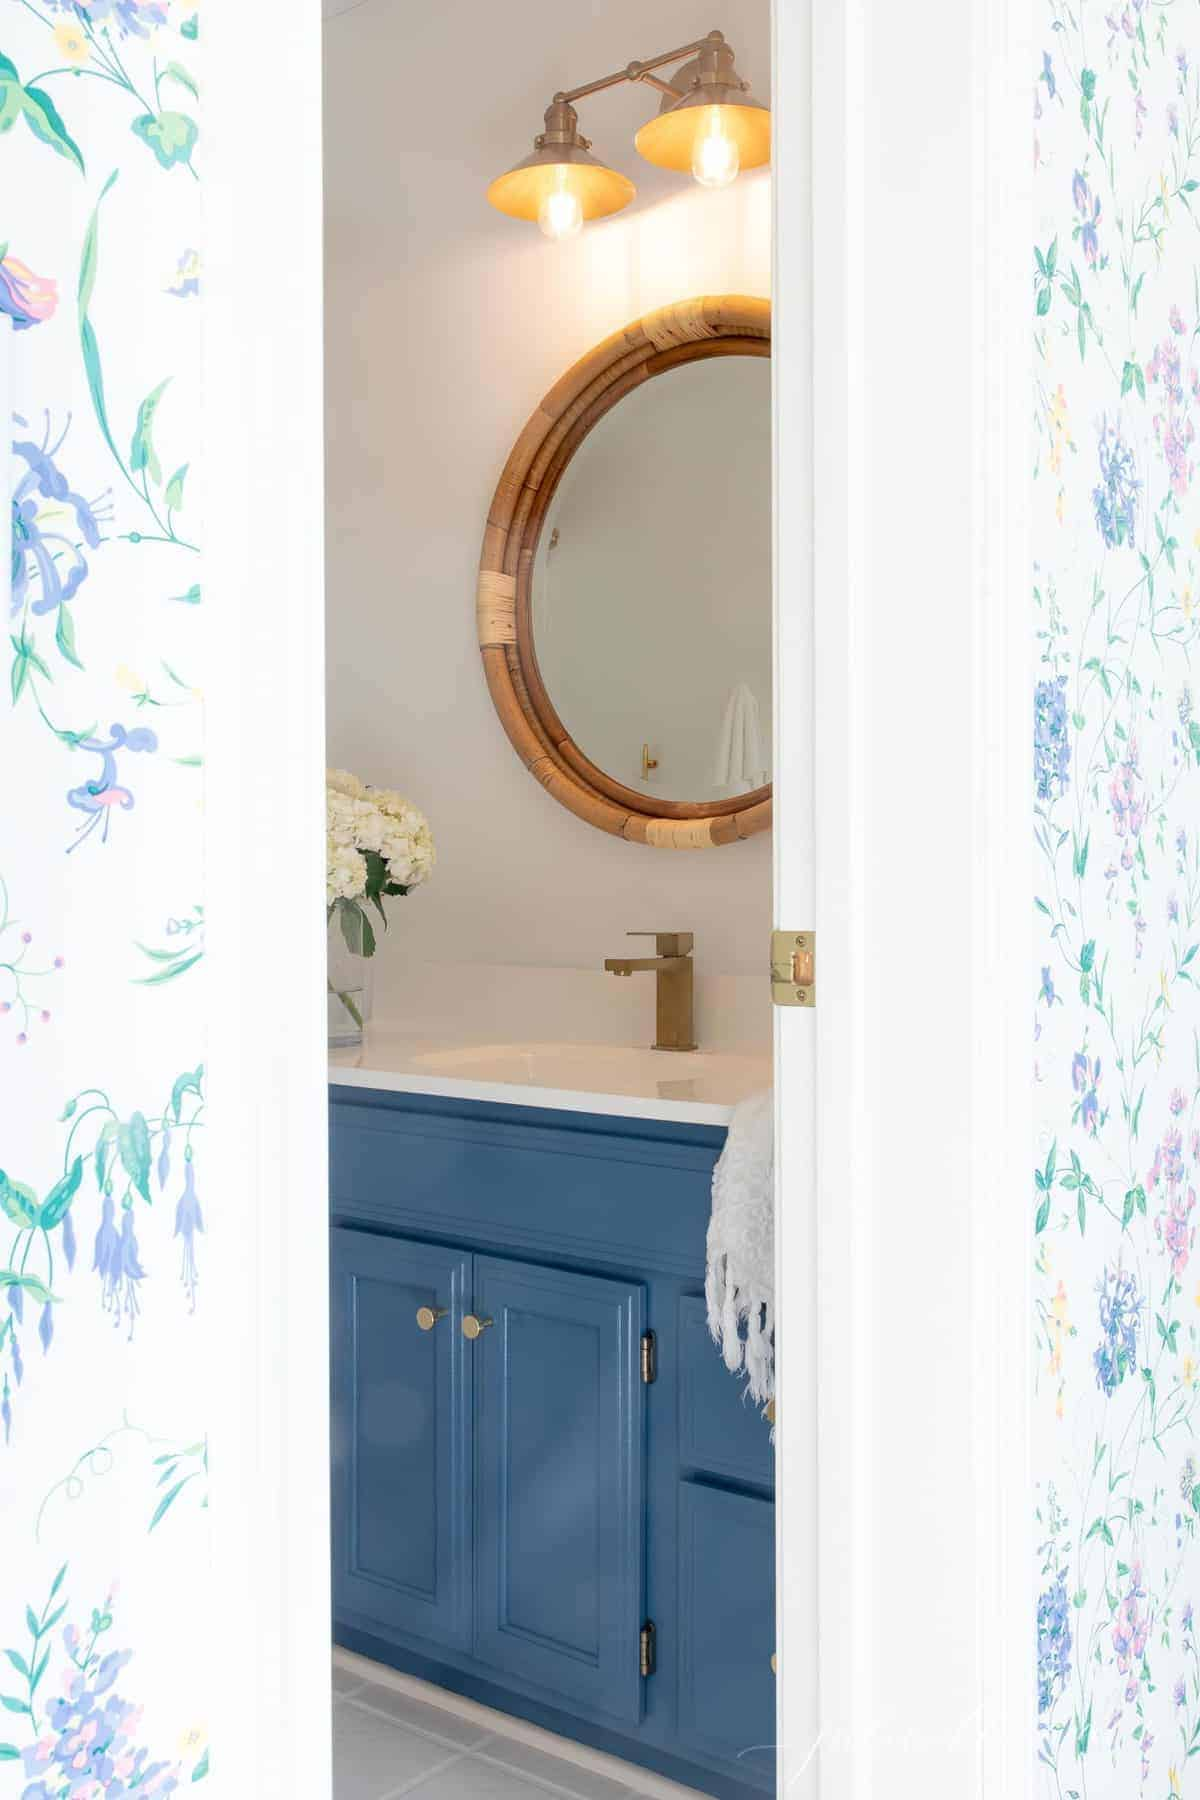 a look inside a white and blue bathroom from nearby bedroom